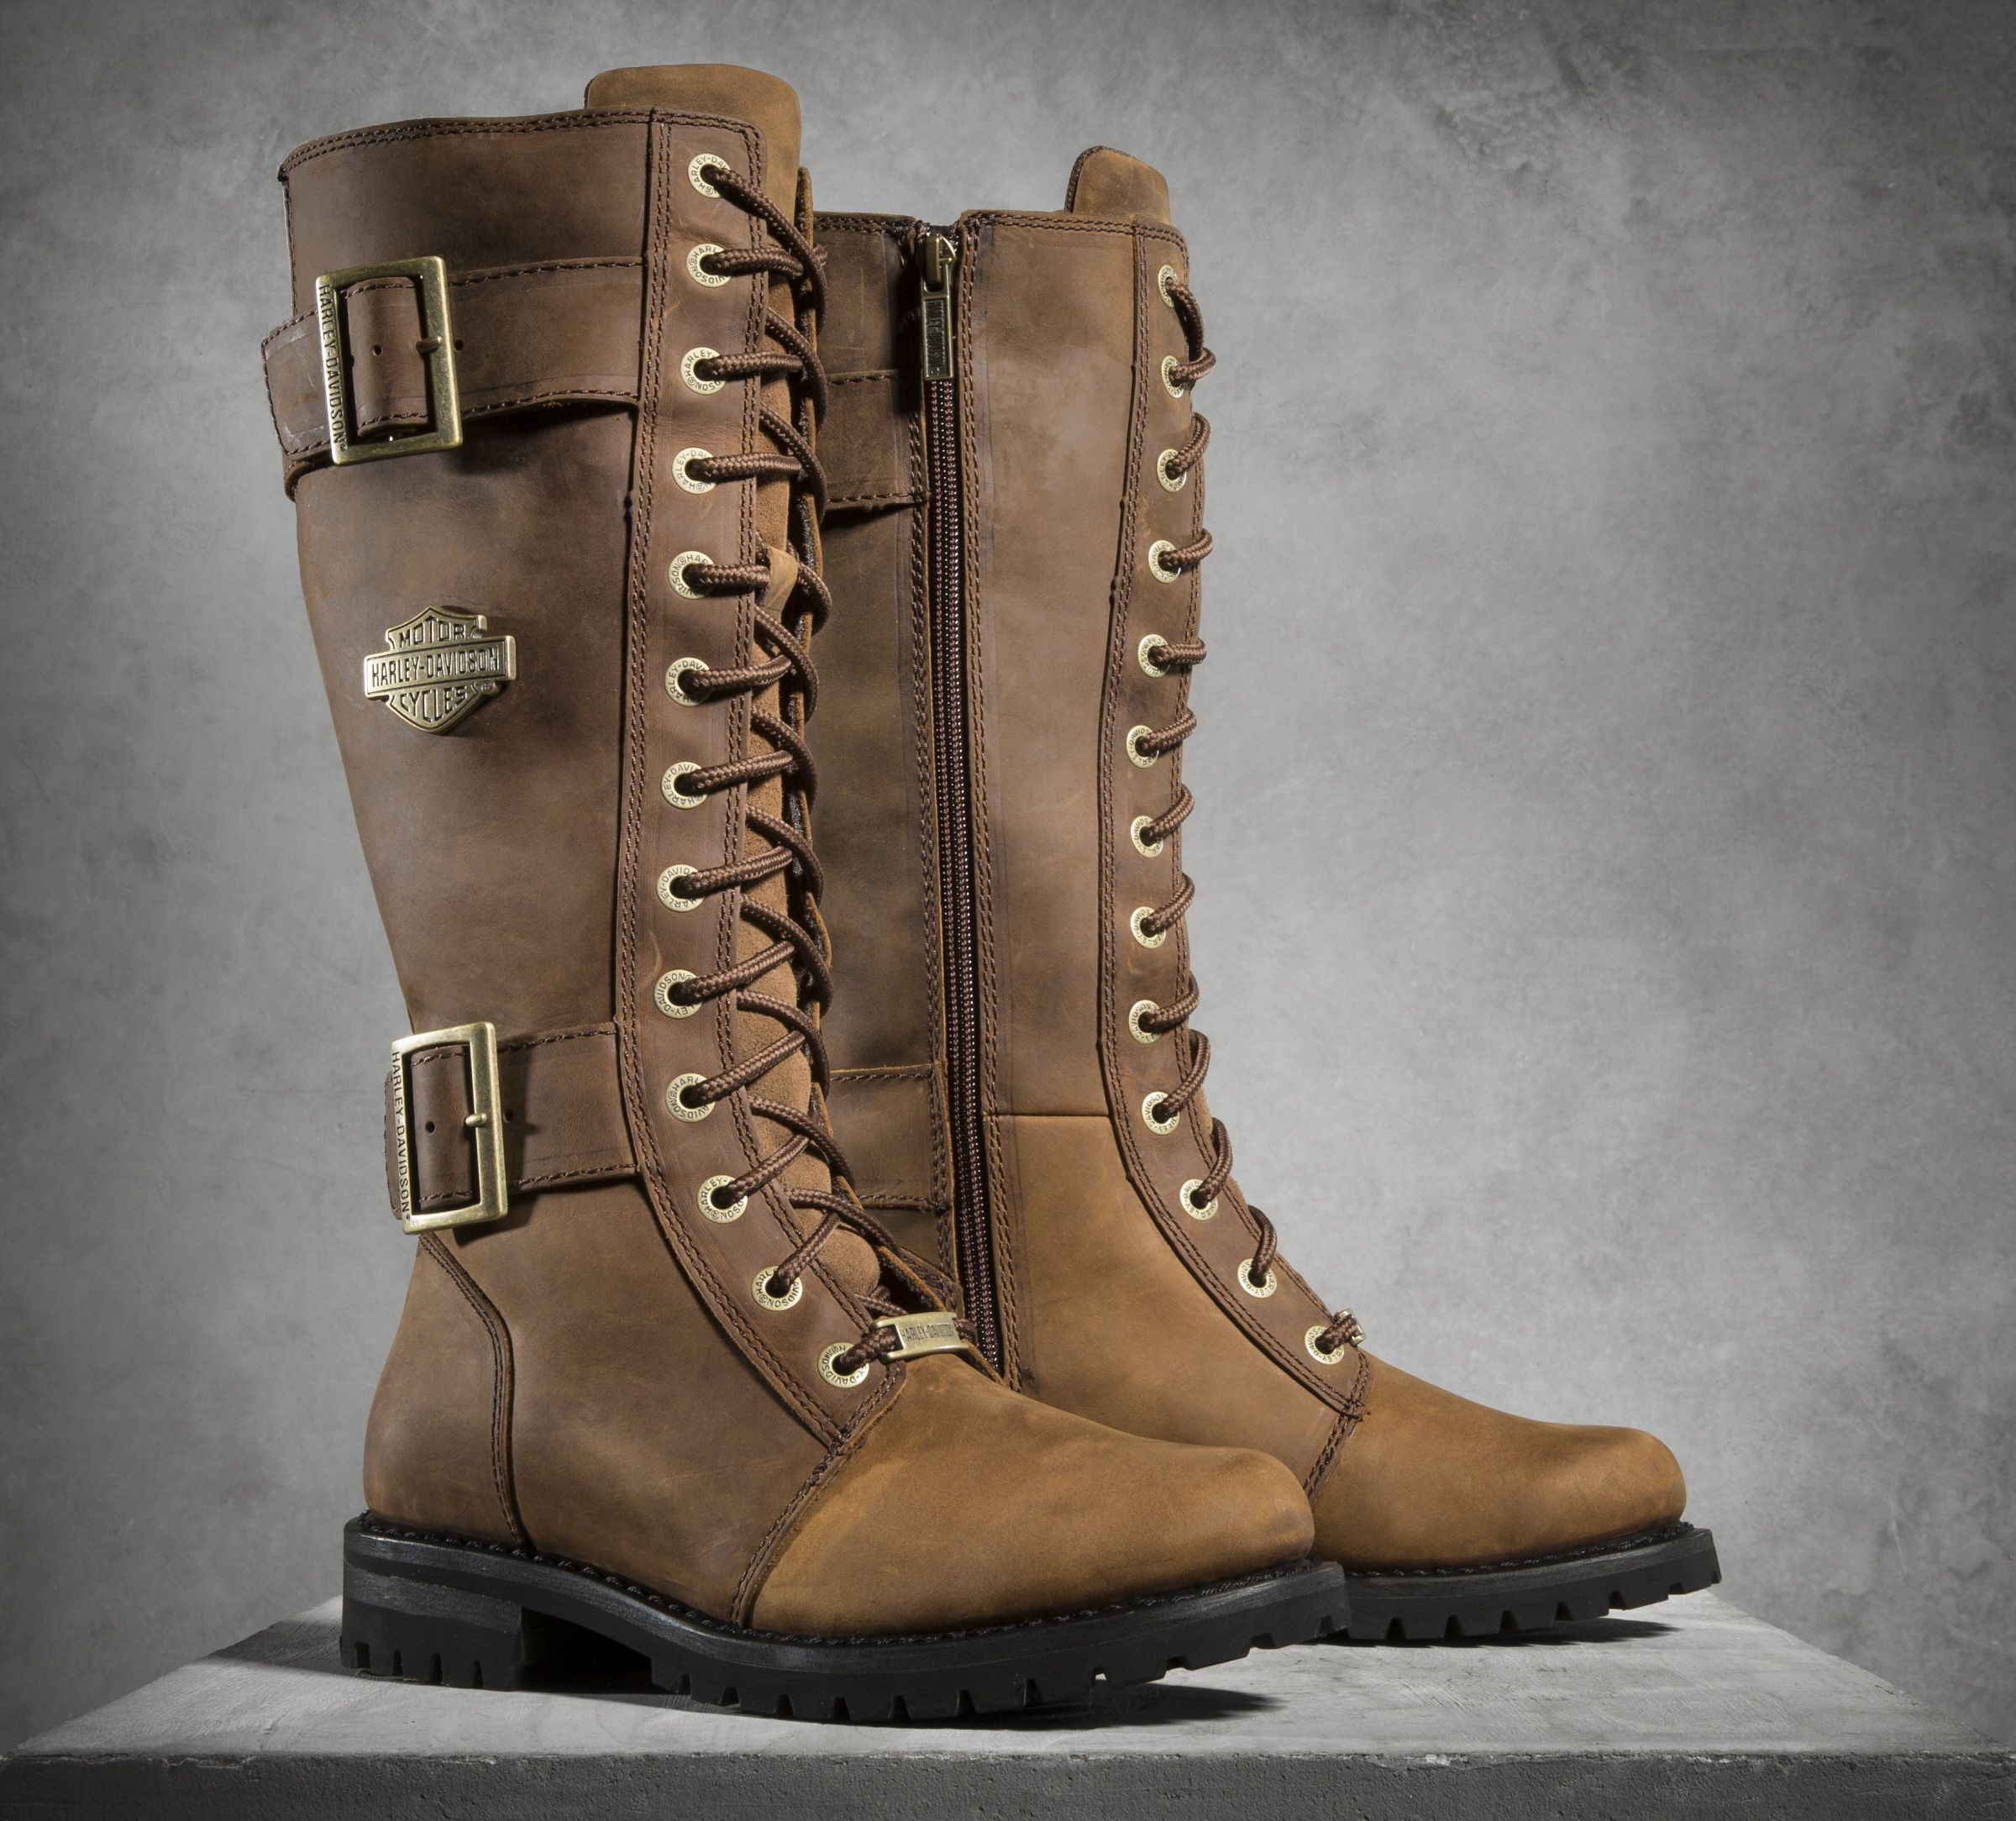 Belhaven Performance Boots Brown Harley Boots Motorcycle Boots Boots